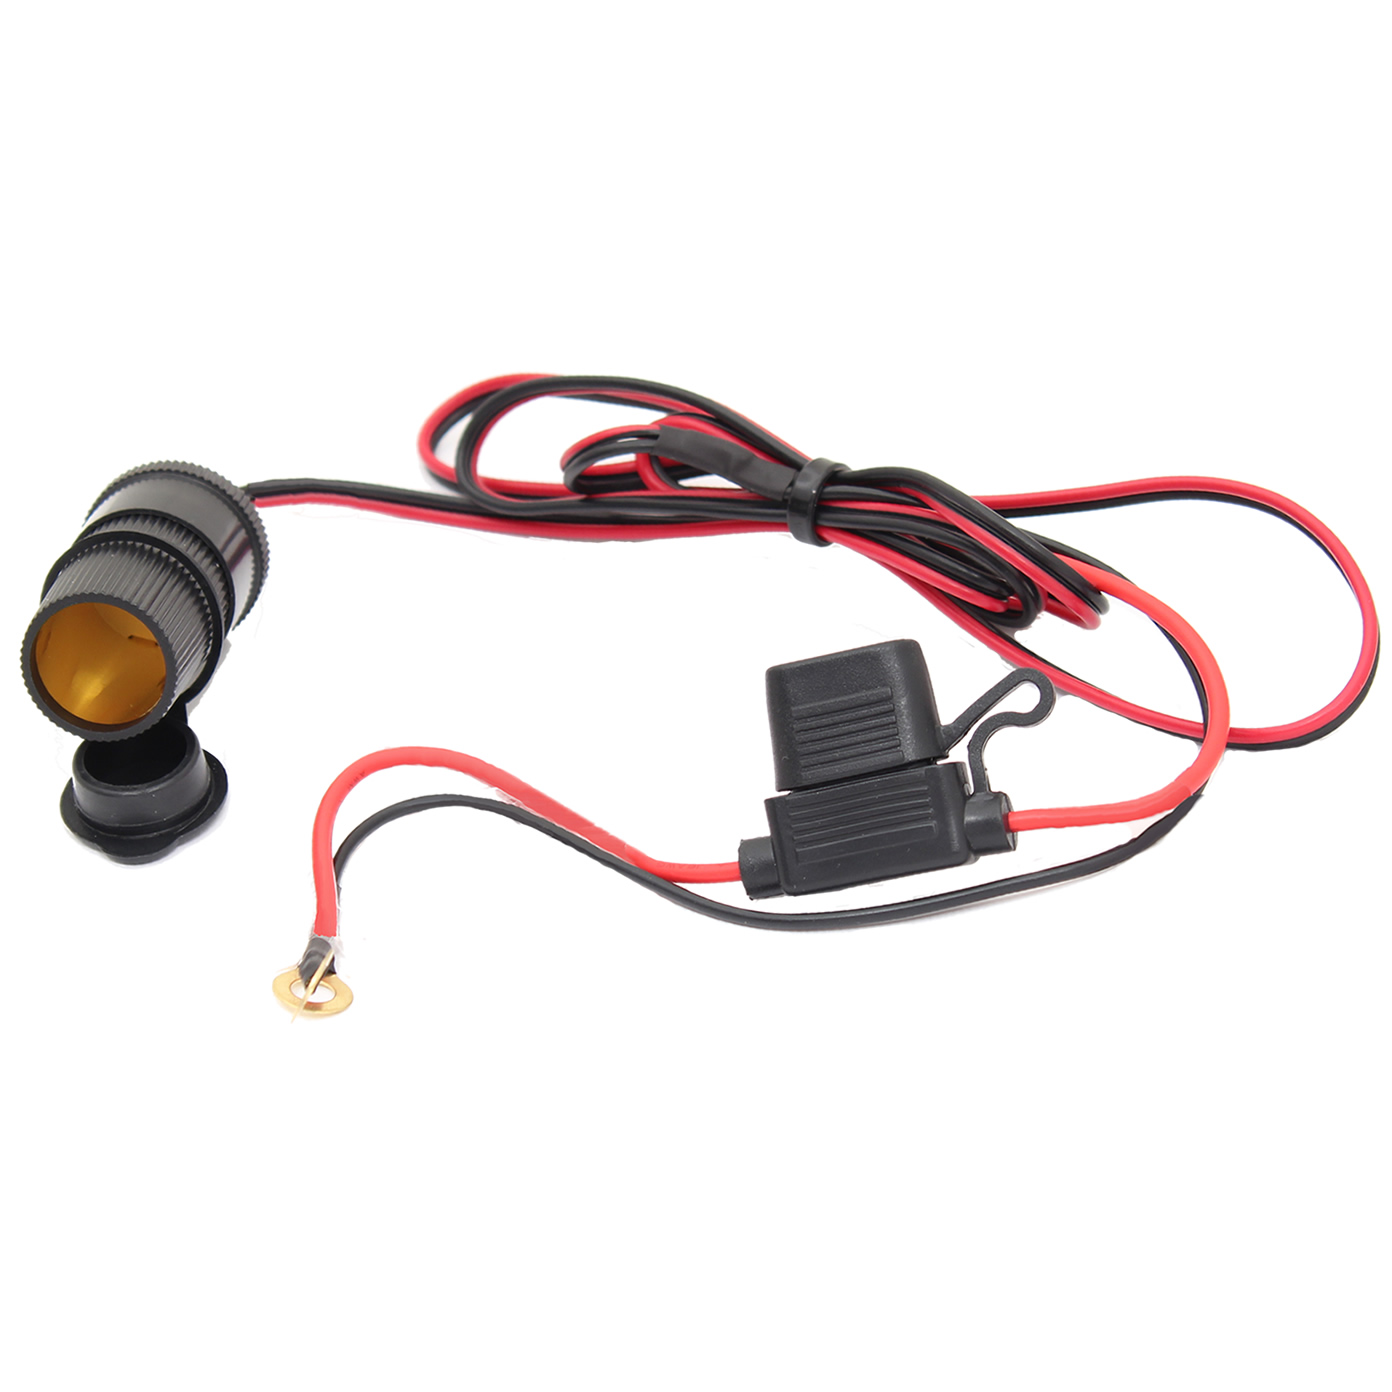 12V MOTORBIKE/MOTORCYCLE CIGARETTE LIGHTER POWER ADAPTER SOCKET WATERPROOF PLUG Enlarged Preview